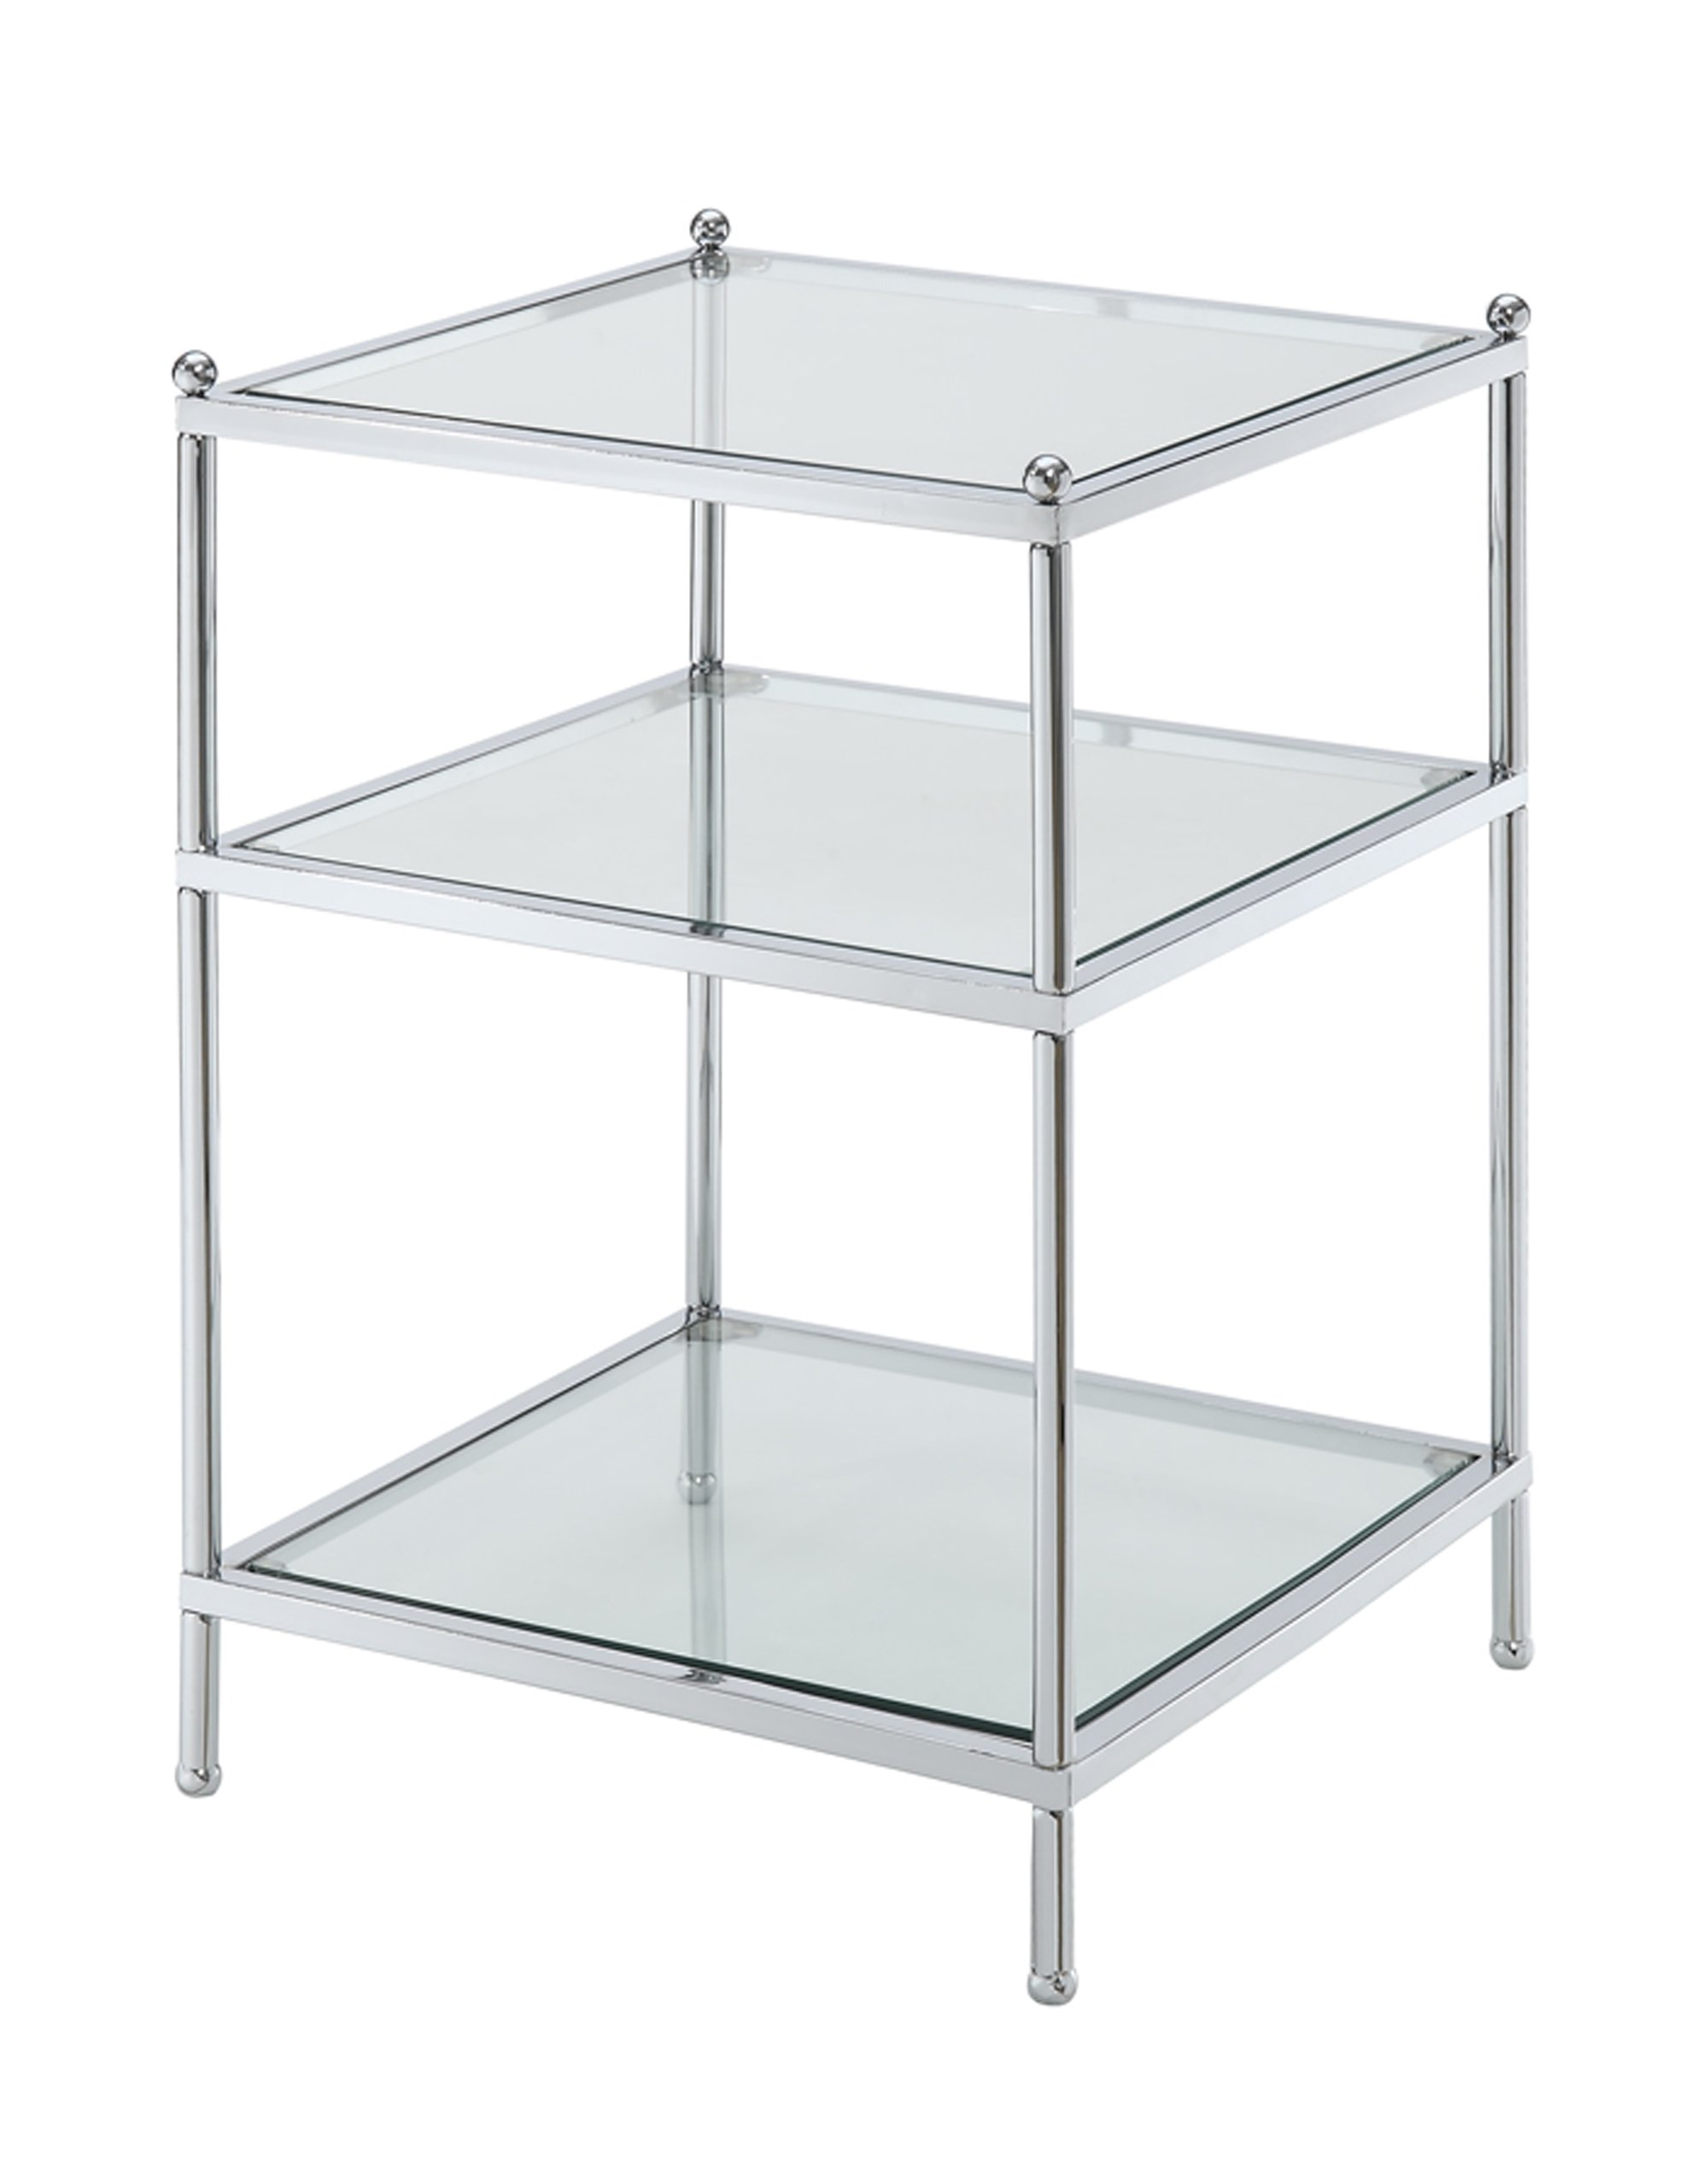 Convenience Concepts Royal Crest Collection End Table, Chrome/Glass